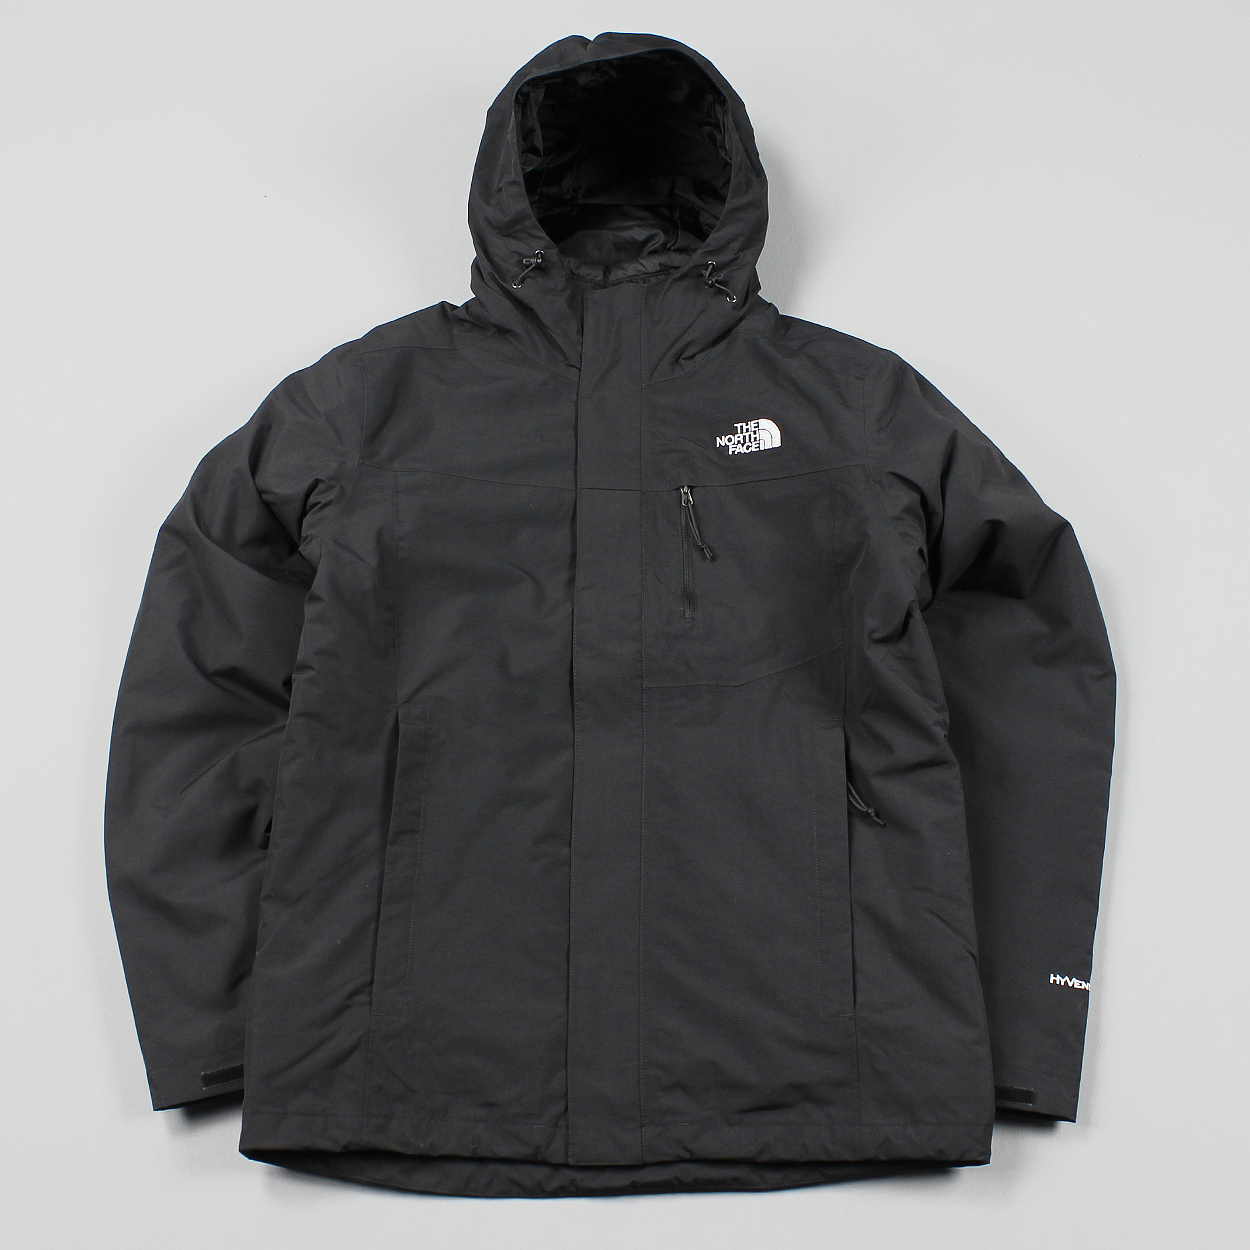 7baedd2d6 The North Face Carto Triclimate Mens Outdoor Jacket Black £154.00